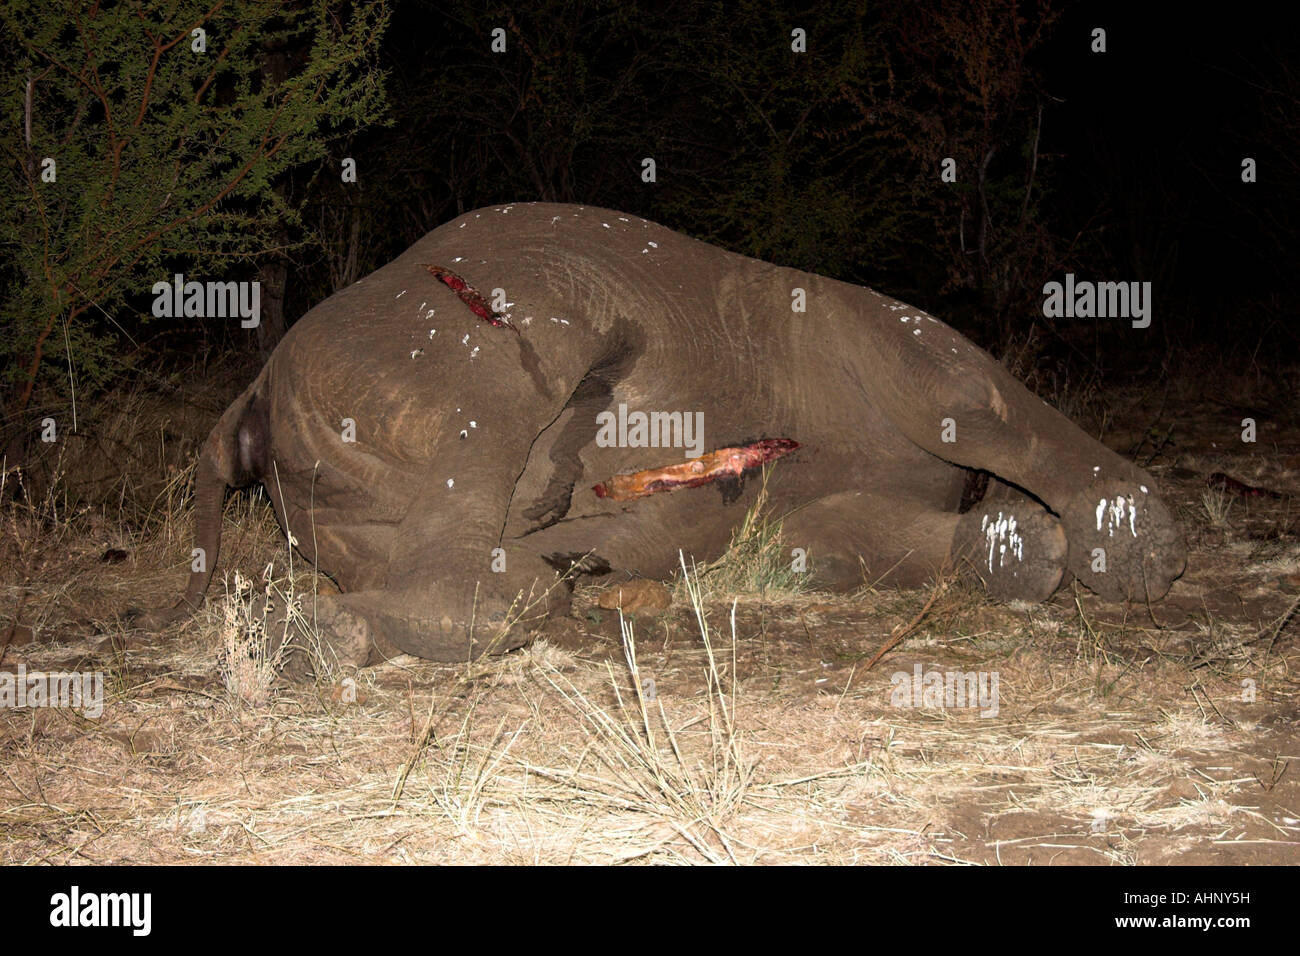 Dead African elephant with tusks removed - Stock Image